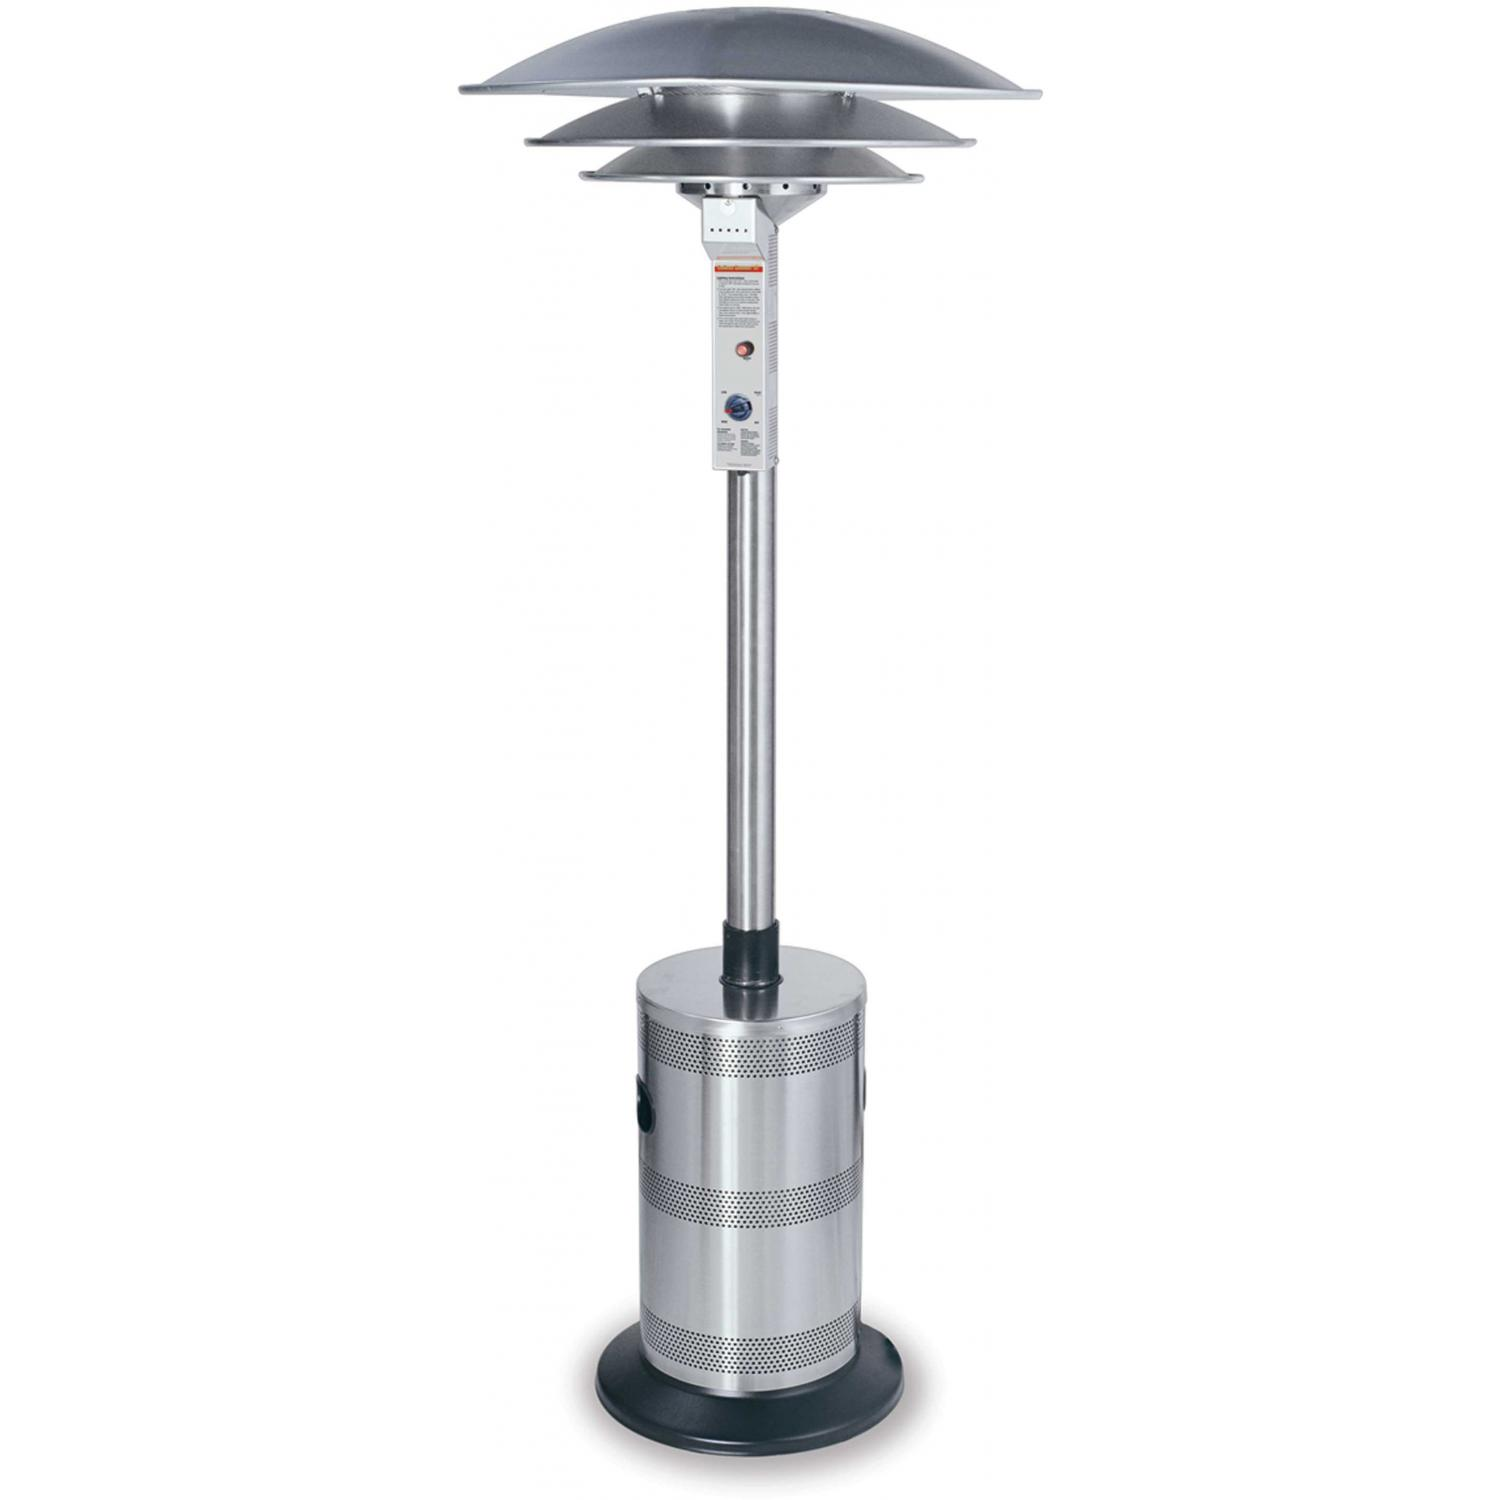 Endless Summer Patio Heaters Stainless Steel Commercial Triple Dome Propane Patio Heater